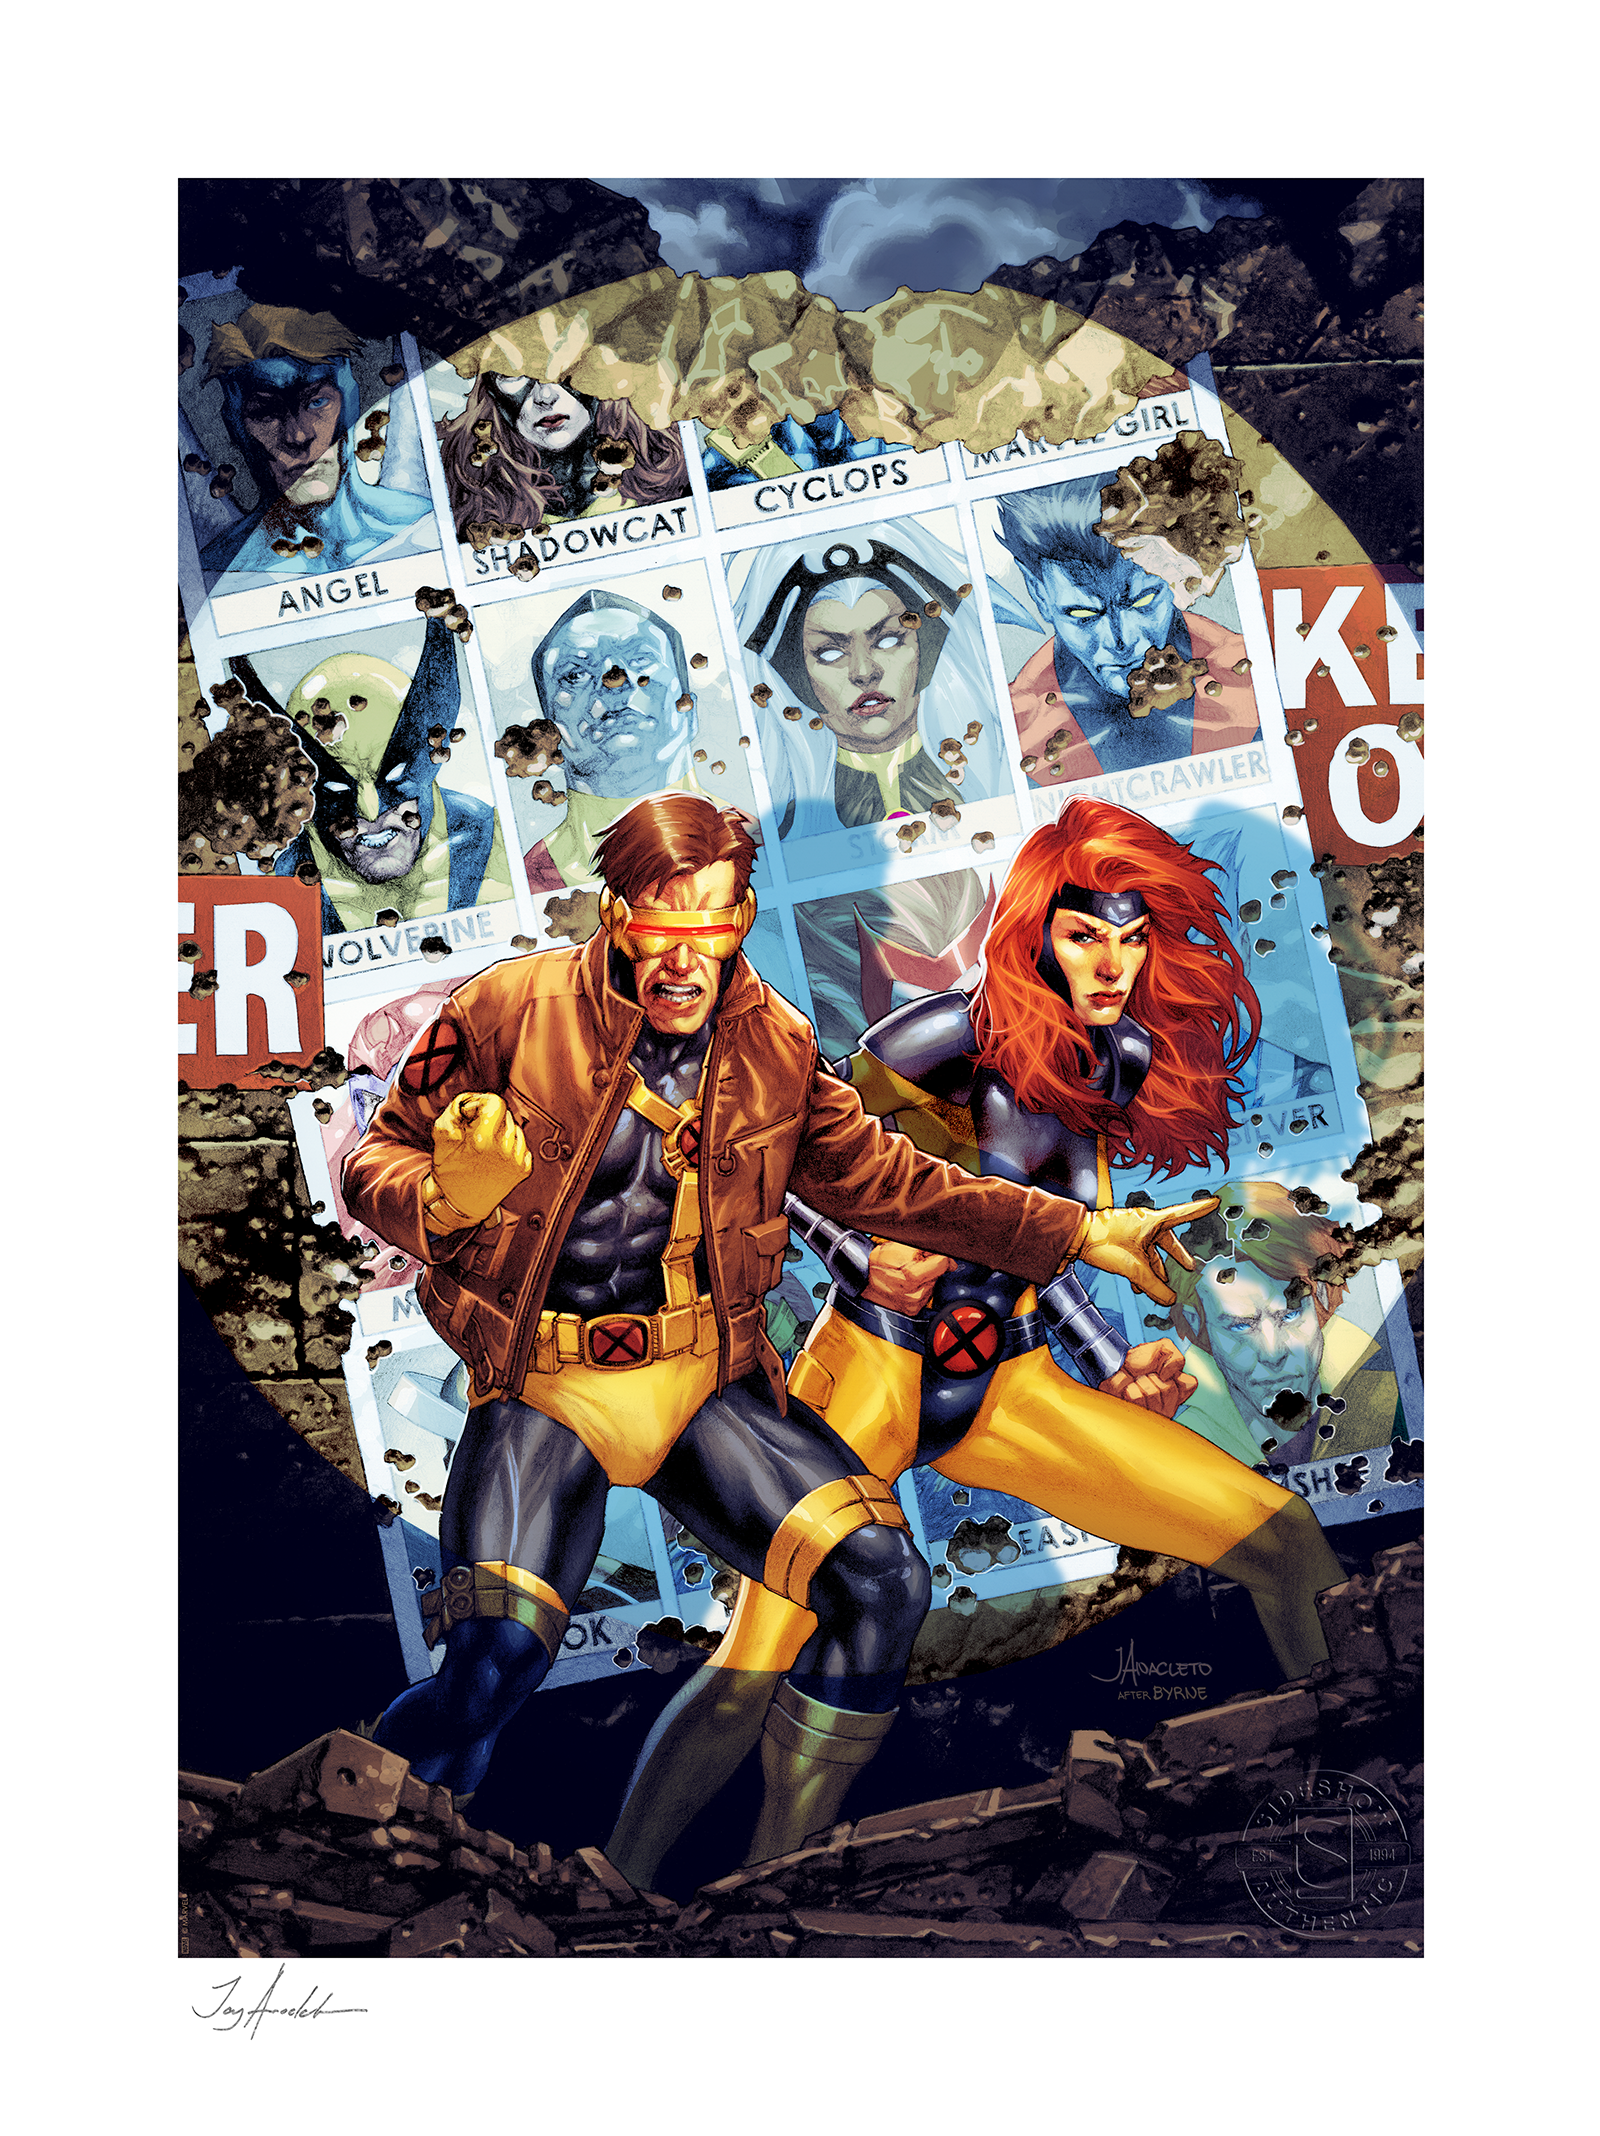 Sideshow Collectibles X-Men #7 Art Print